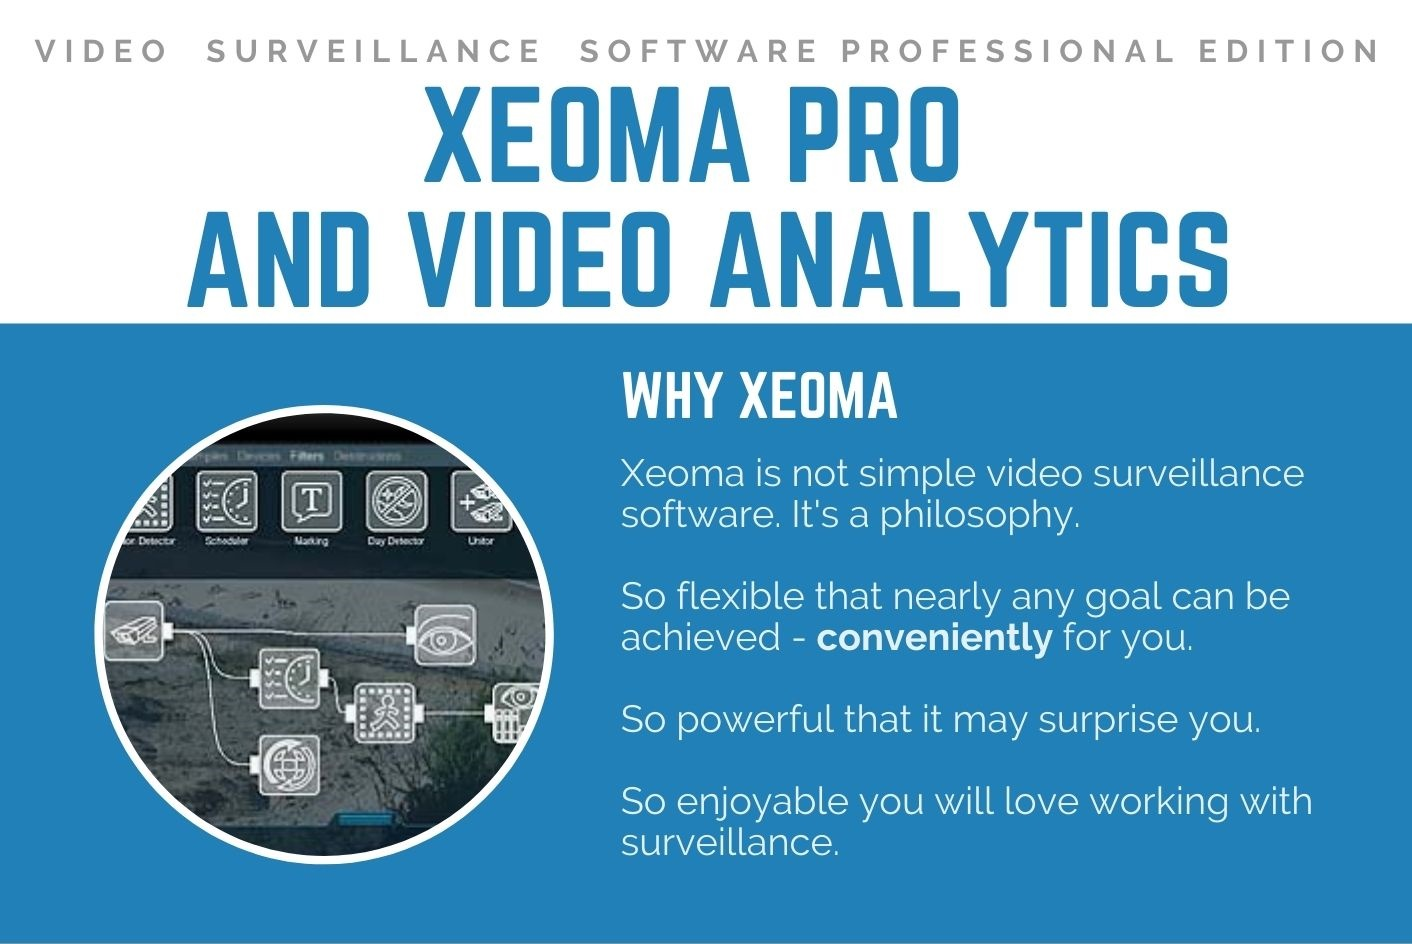 Download a leaflet about Xeoma Video Analytics in PDF